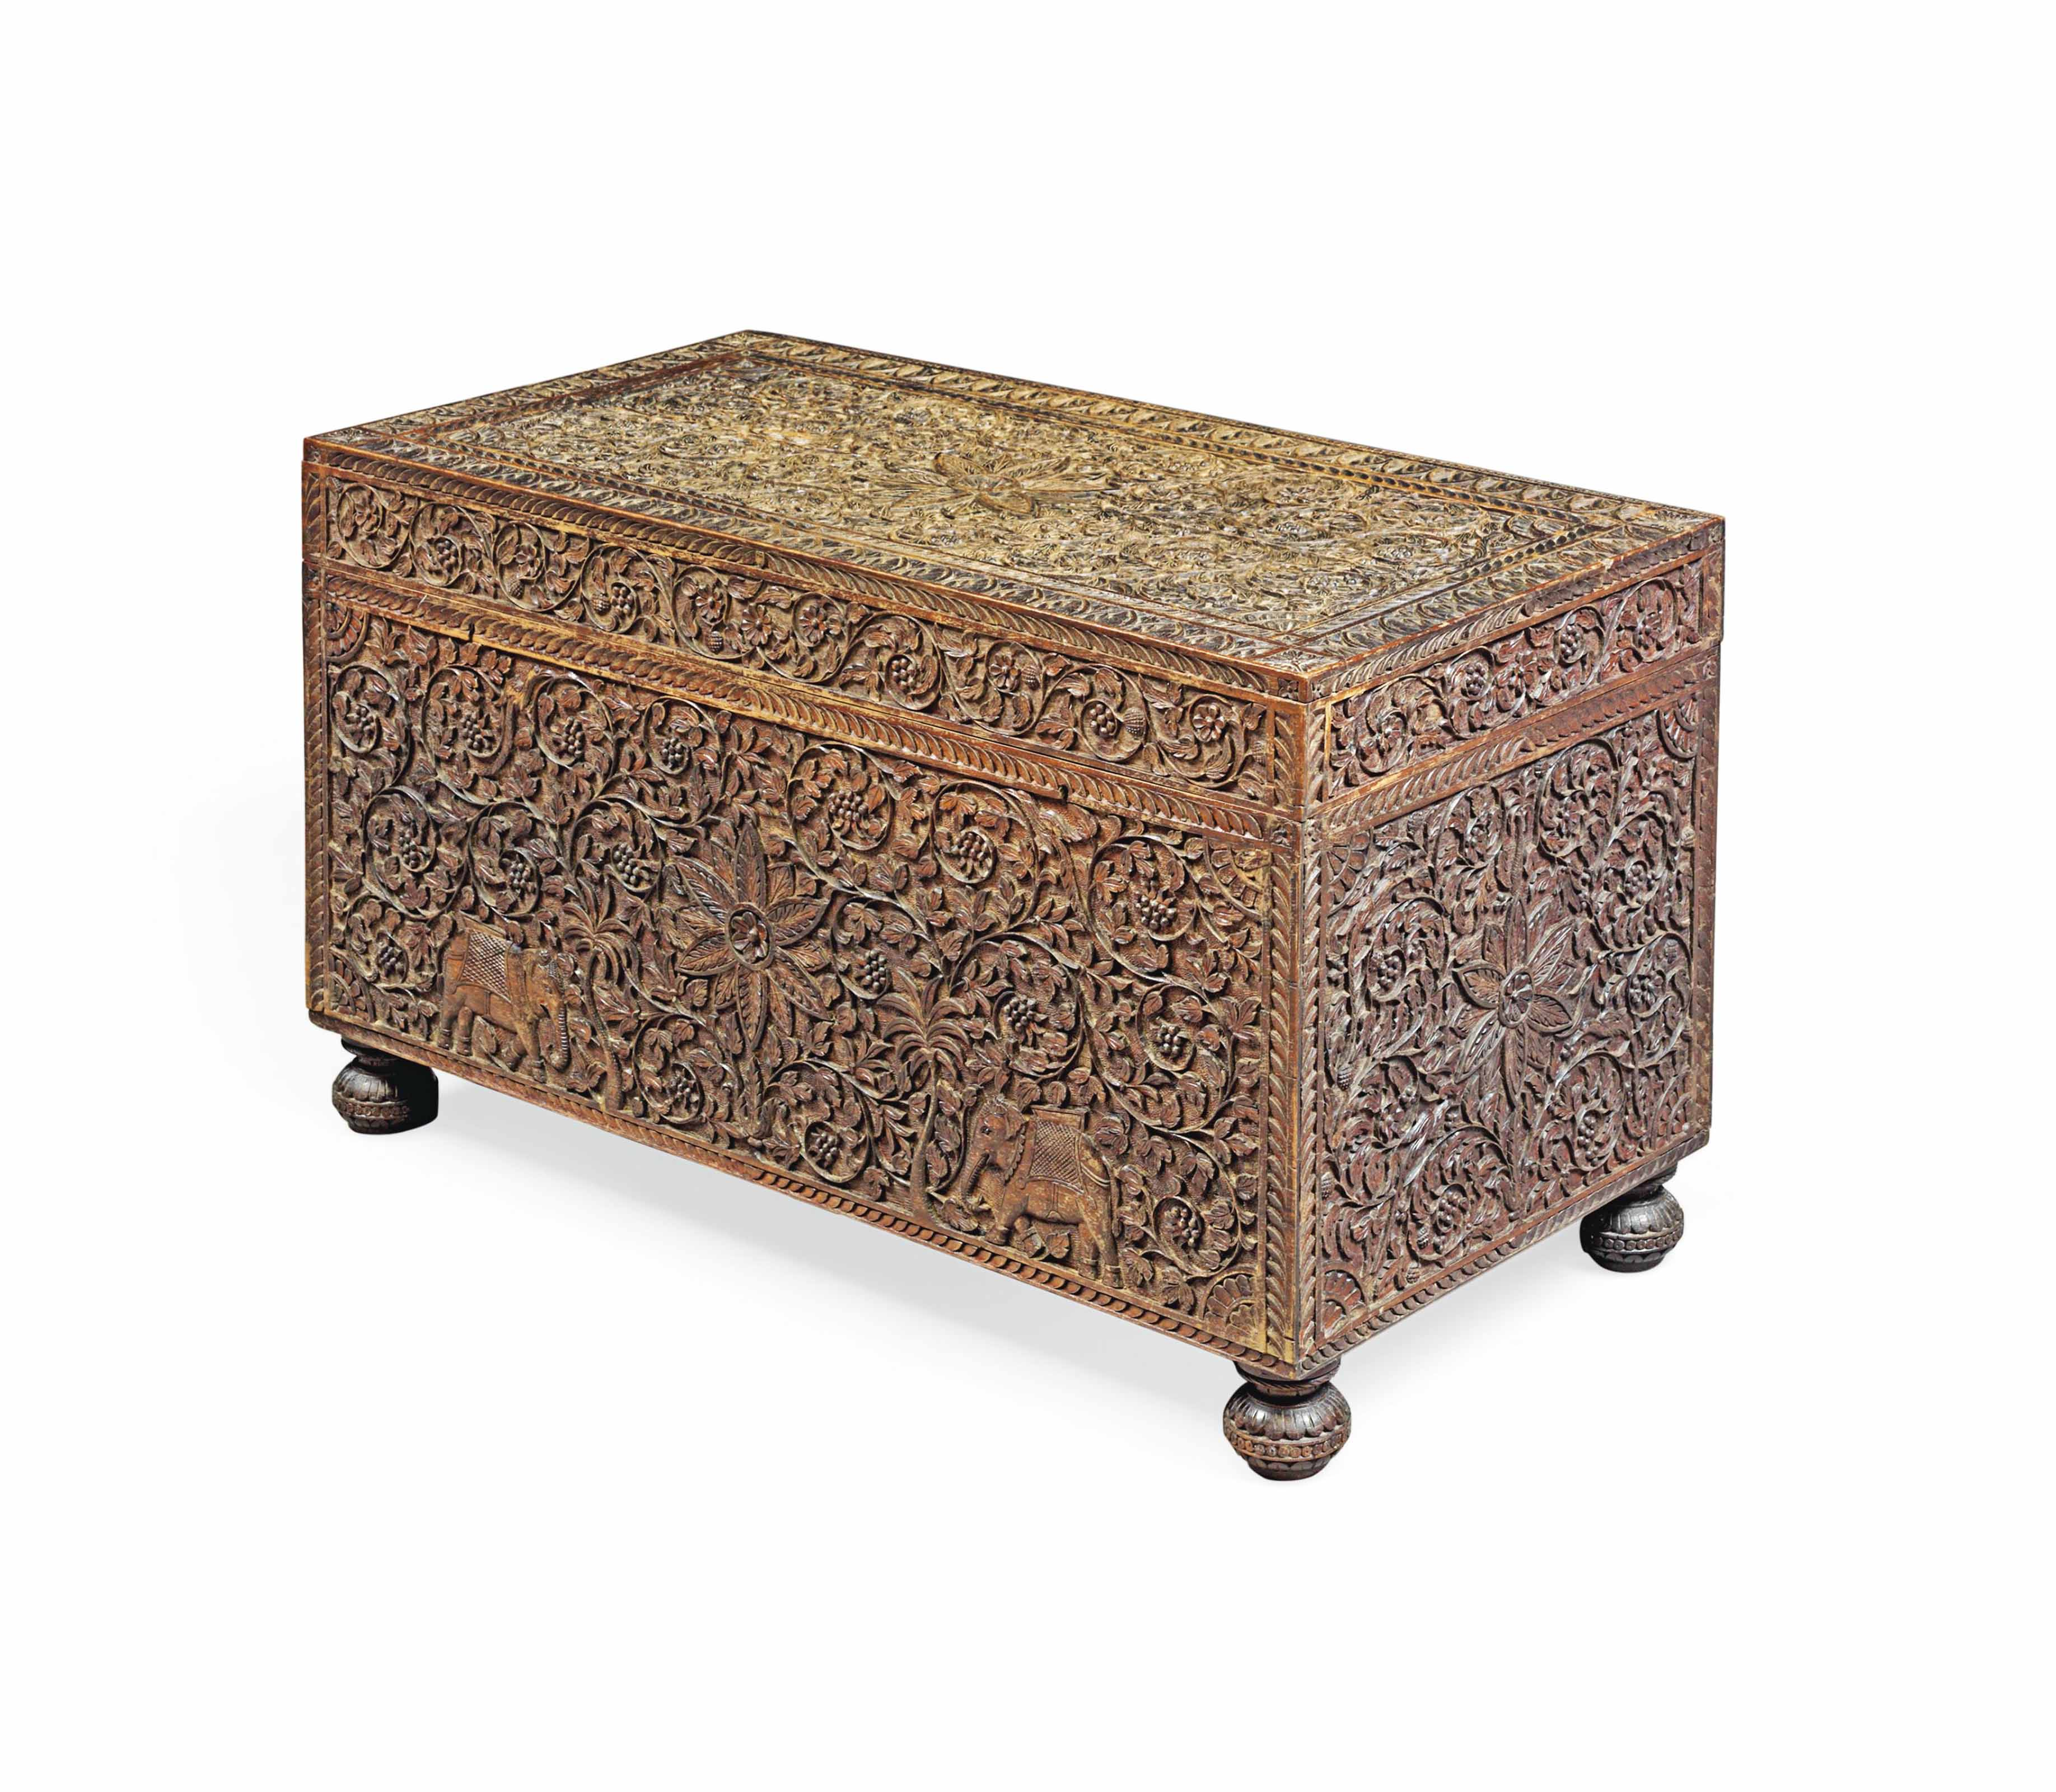 A LARGE CARVED WOOD CHEST